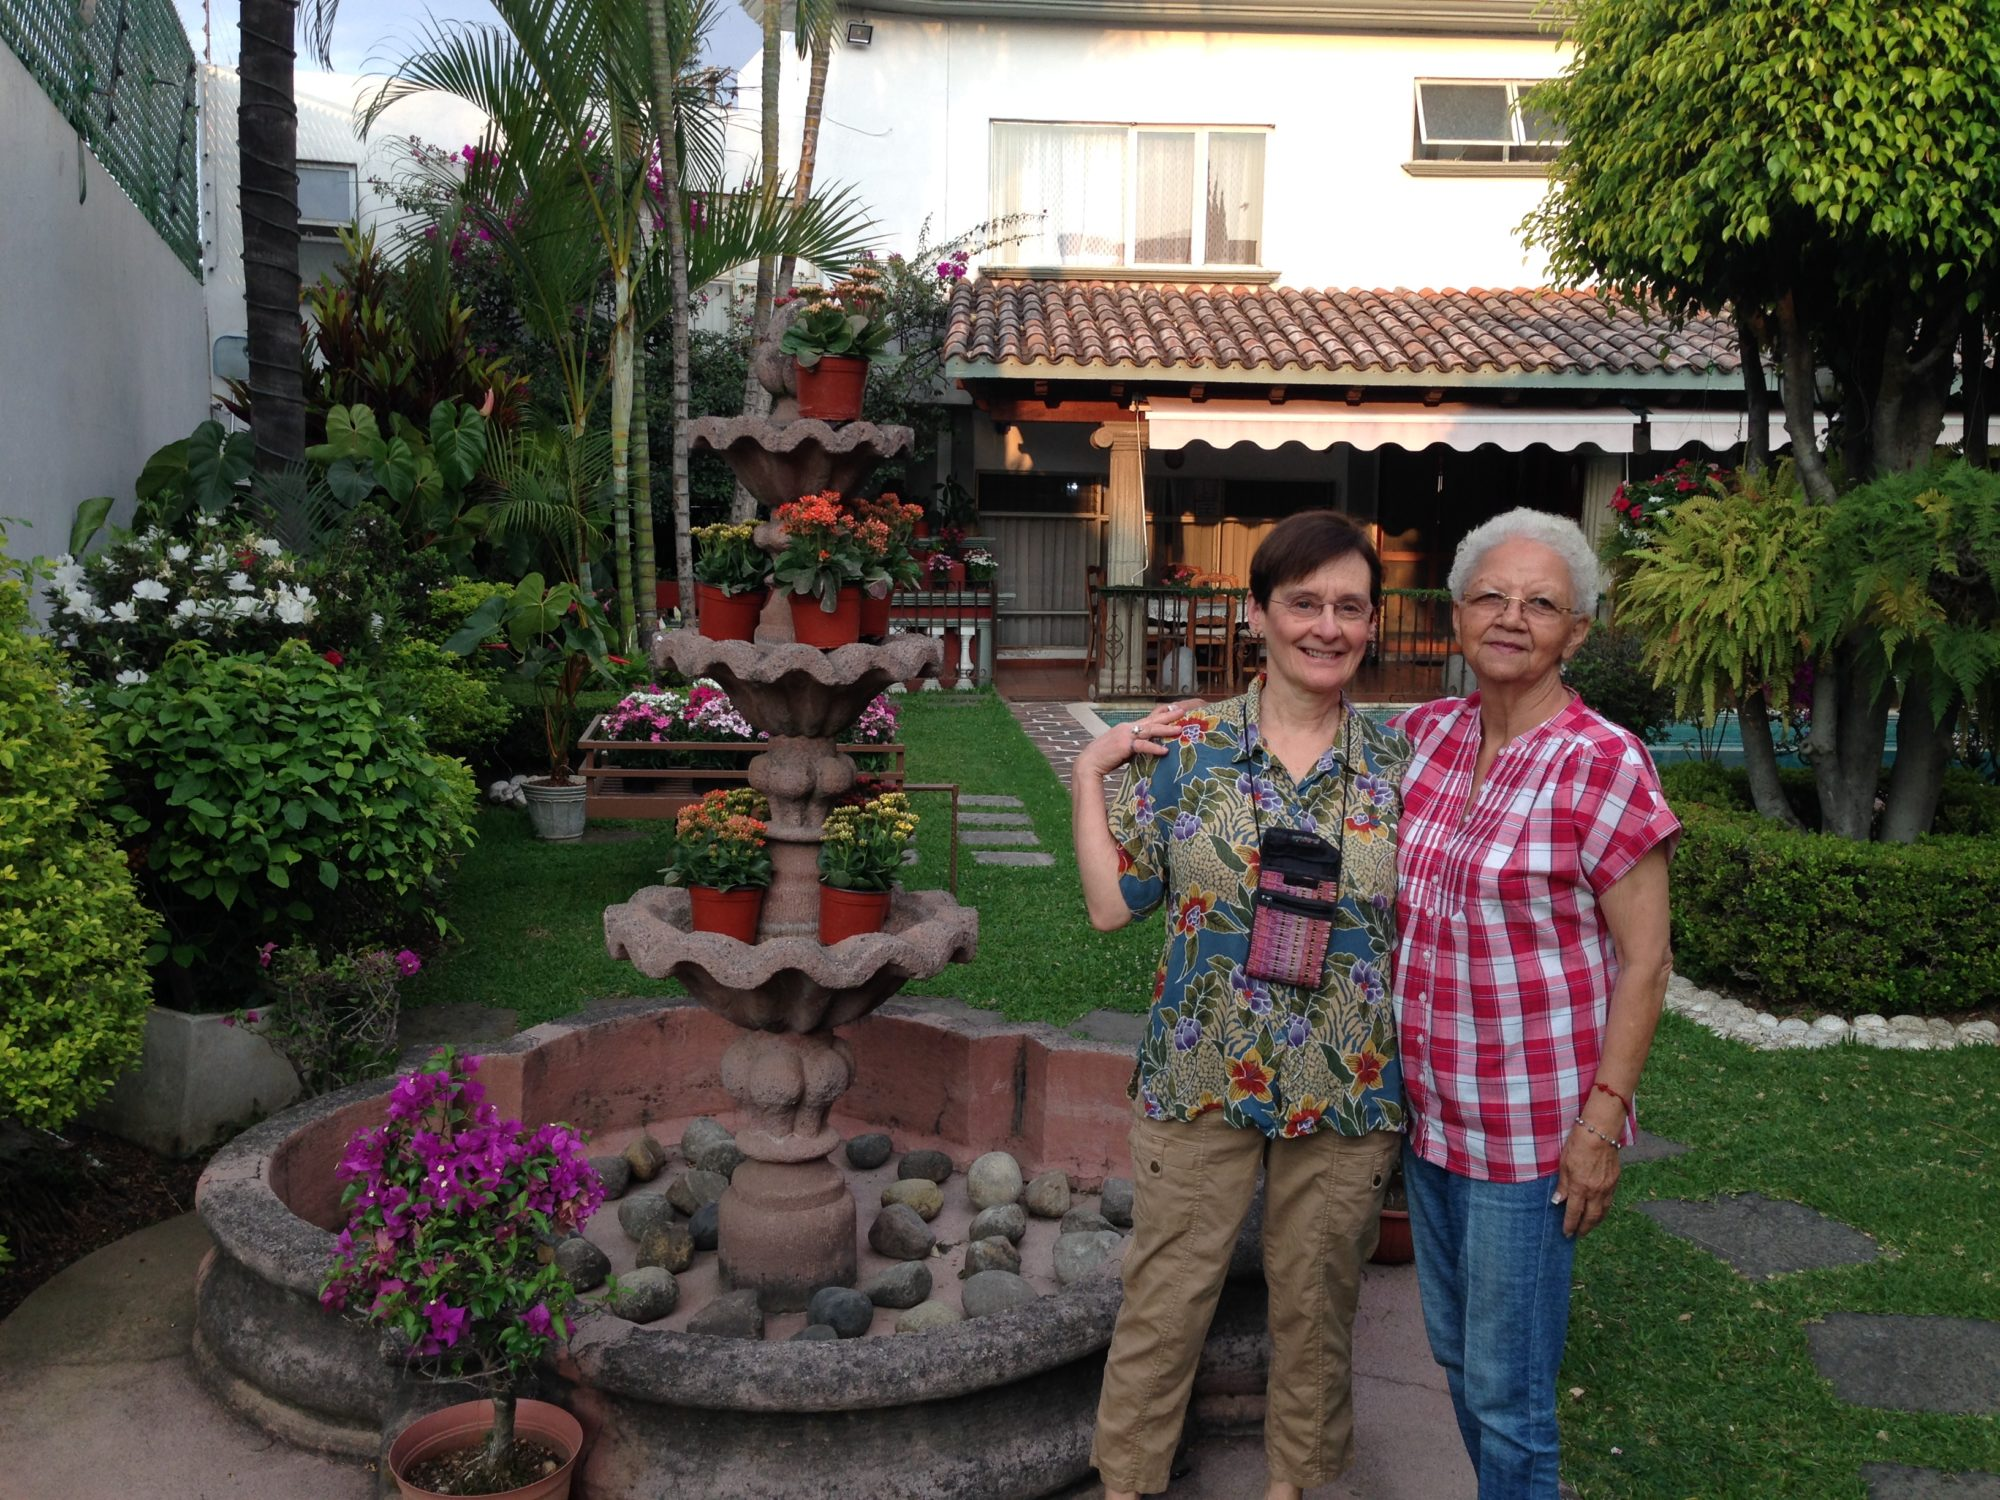 """Jan with Rosita, her Cuernavaca host """"mother"""" since the first Brainerd High School student trip exchange in 1985. Rosita is one of the owners and directors of present day SLI, Spanish Language Institute, in Cuernavaca, location of most recent Central Lakes College Spring Student travel-study in March, 2019."""